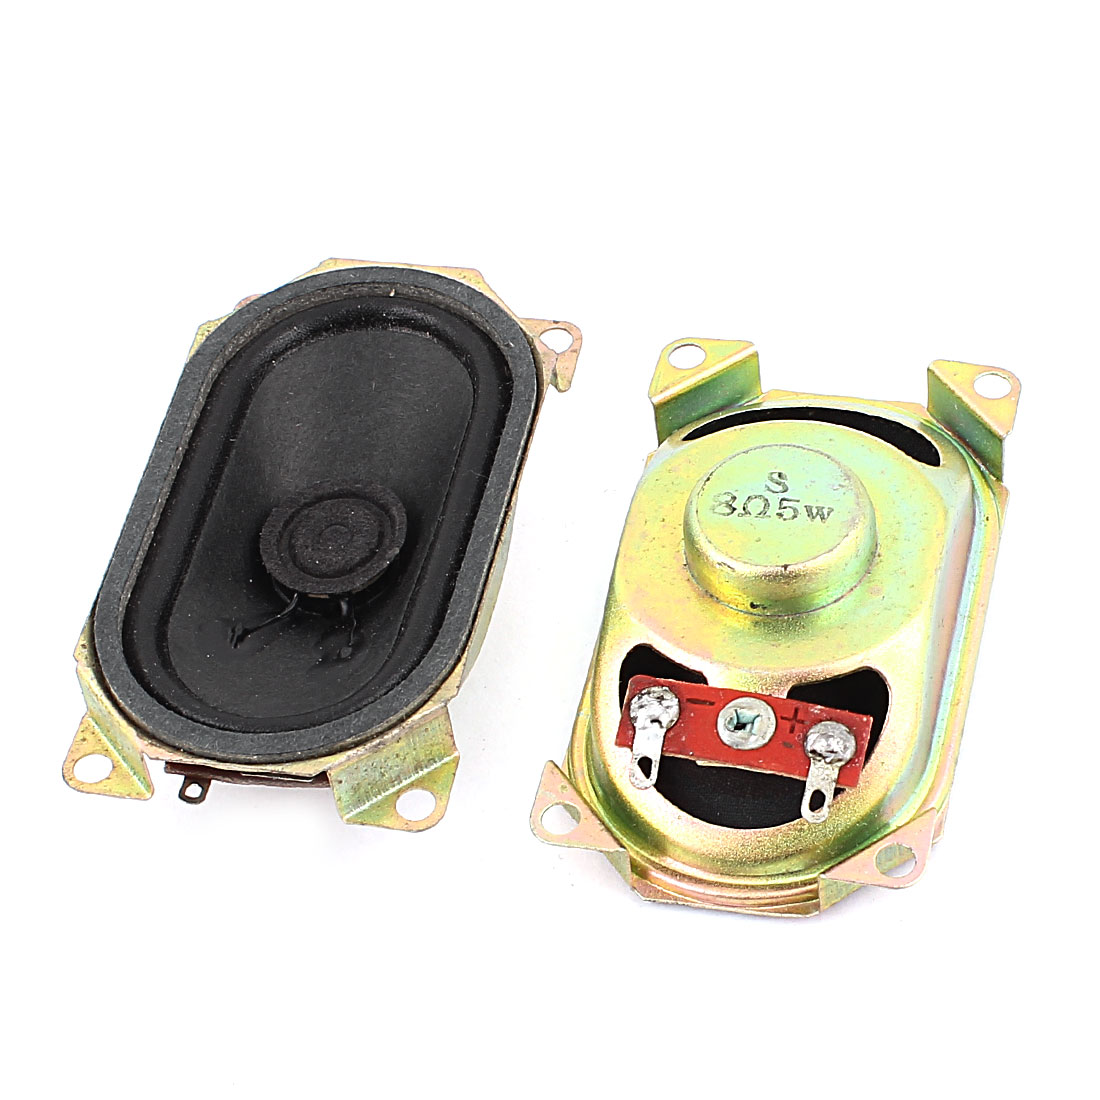 5W 8 Ohm Internal Magnet Speaker Loudspeaker 4 x 7 x 2cm 2Pcs